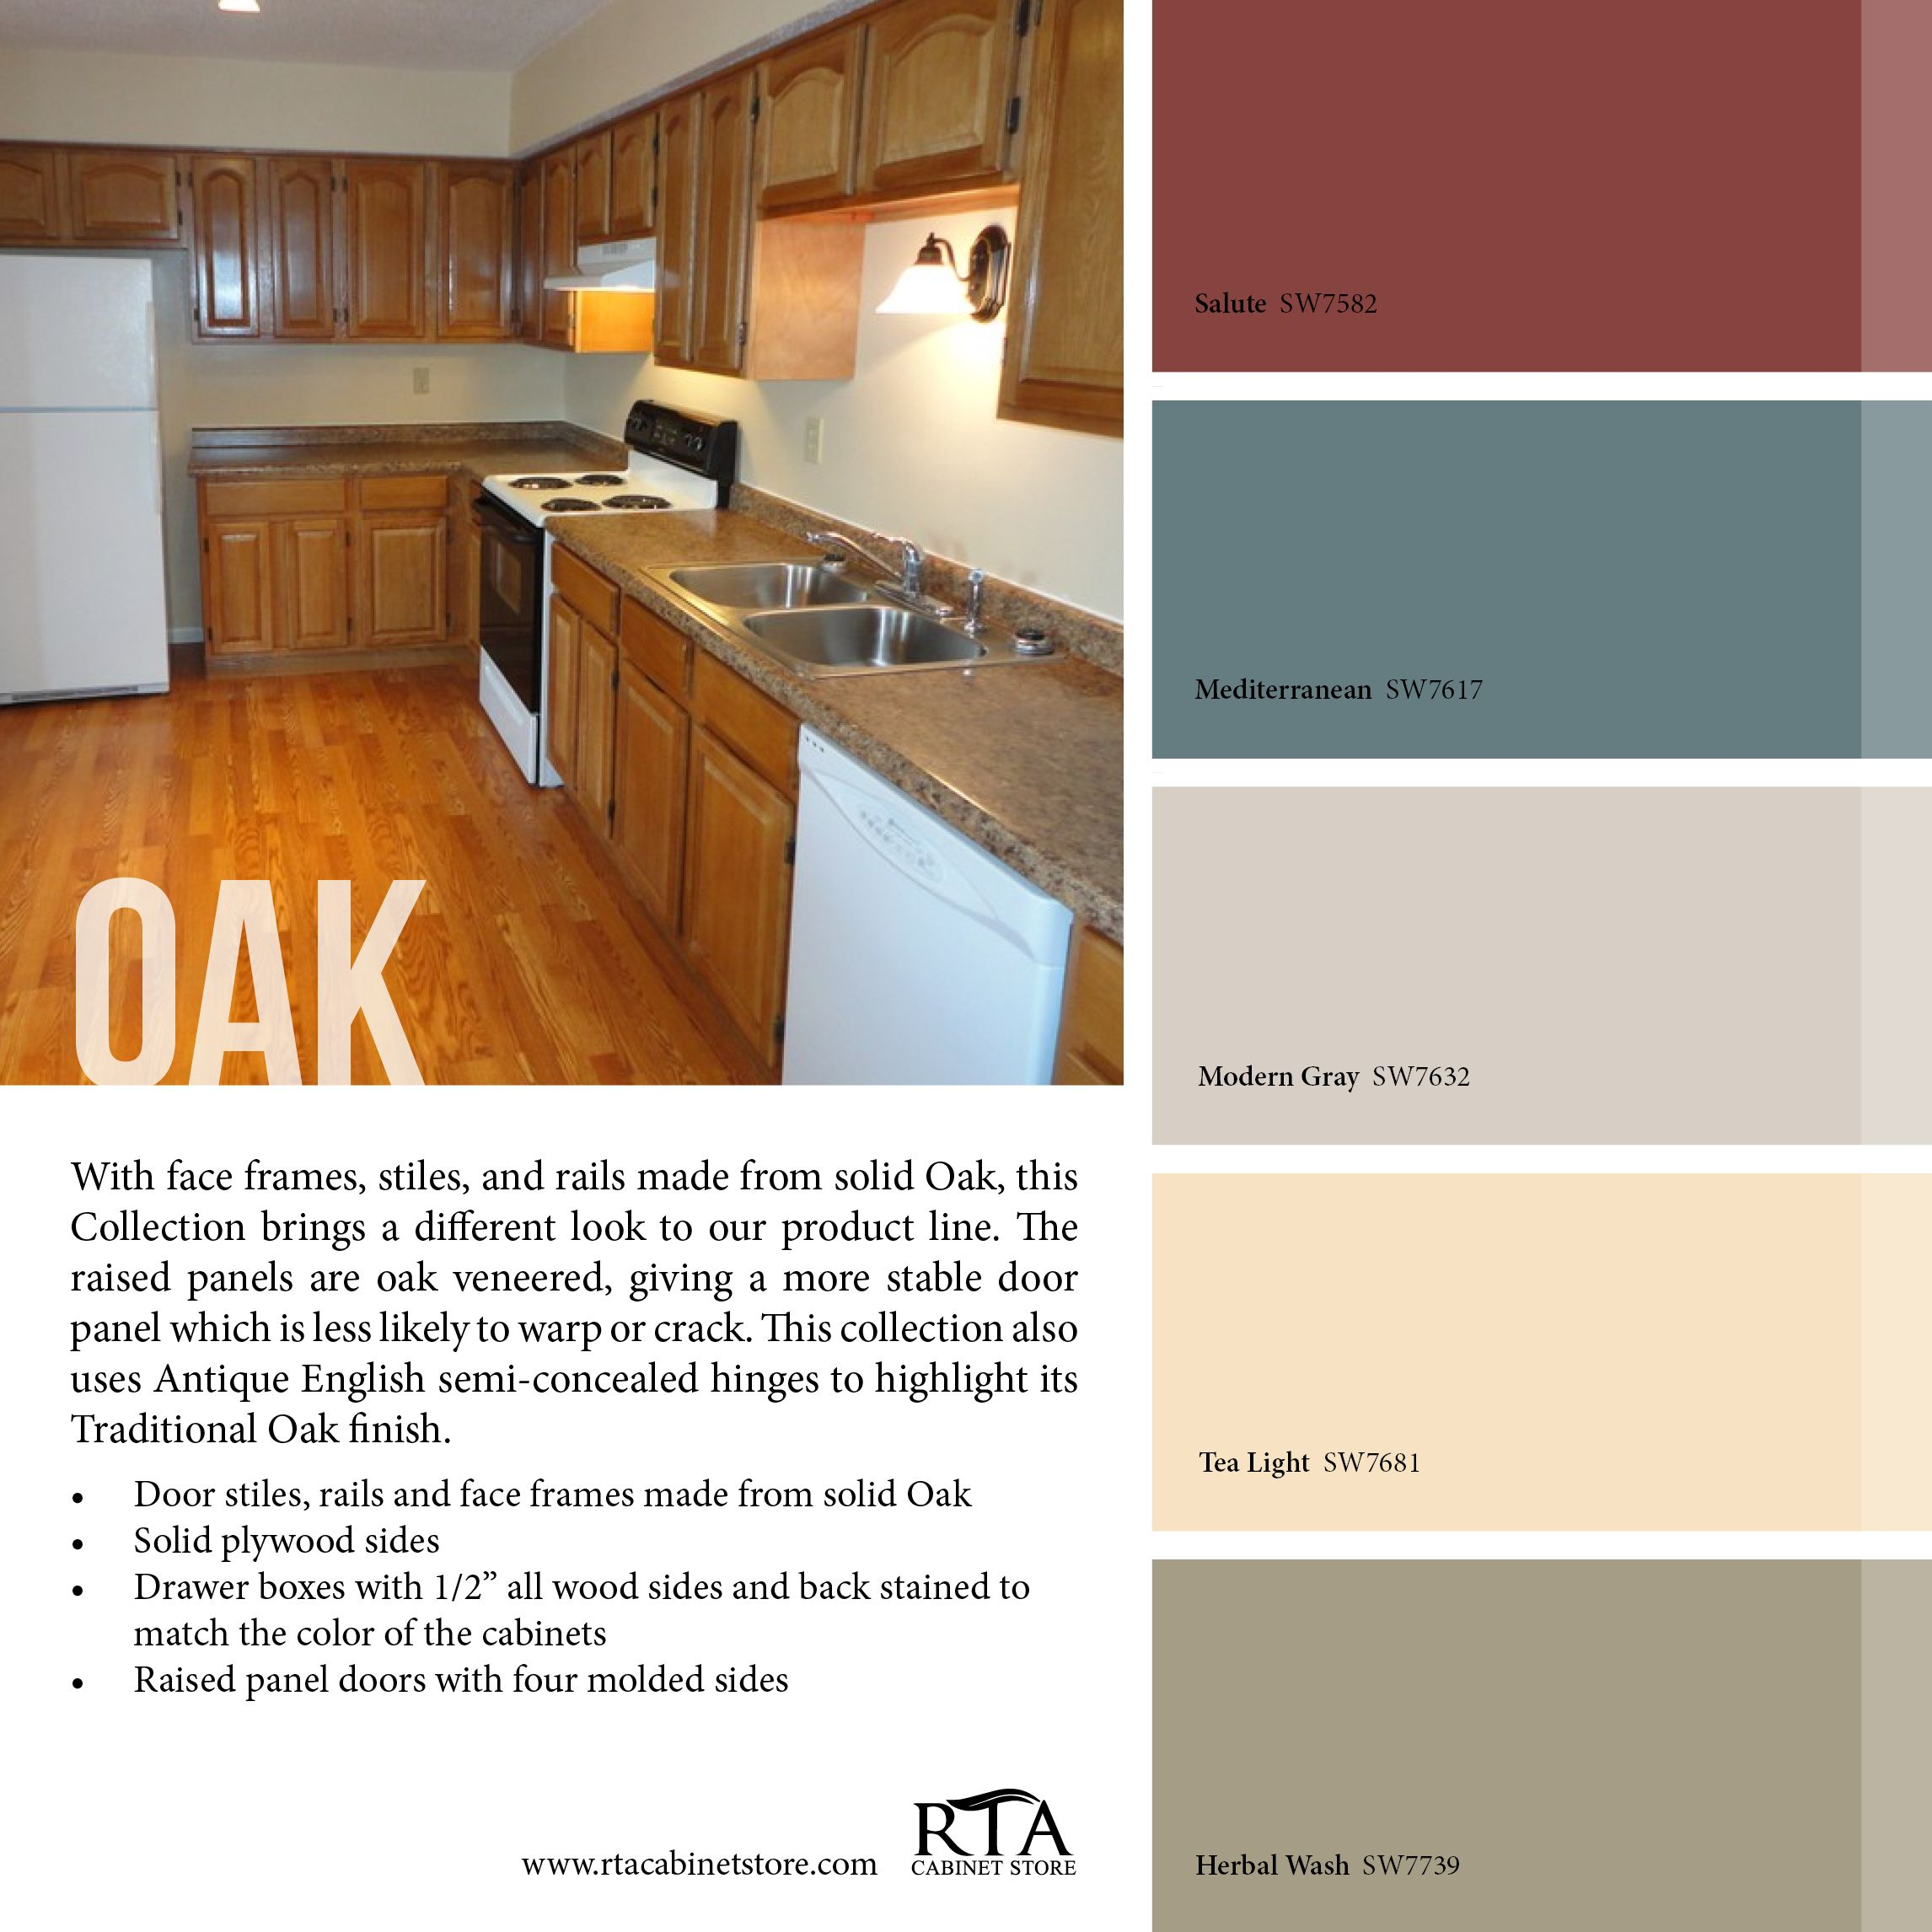 Kitchen Kitchen Paint Colors With Oak Cabinets Kitchen: Color Palette To Go With Our Oak Kitchen Cabinet Line